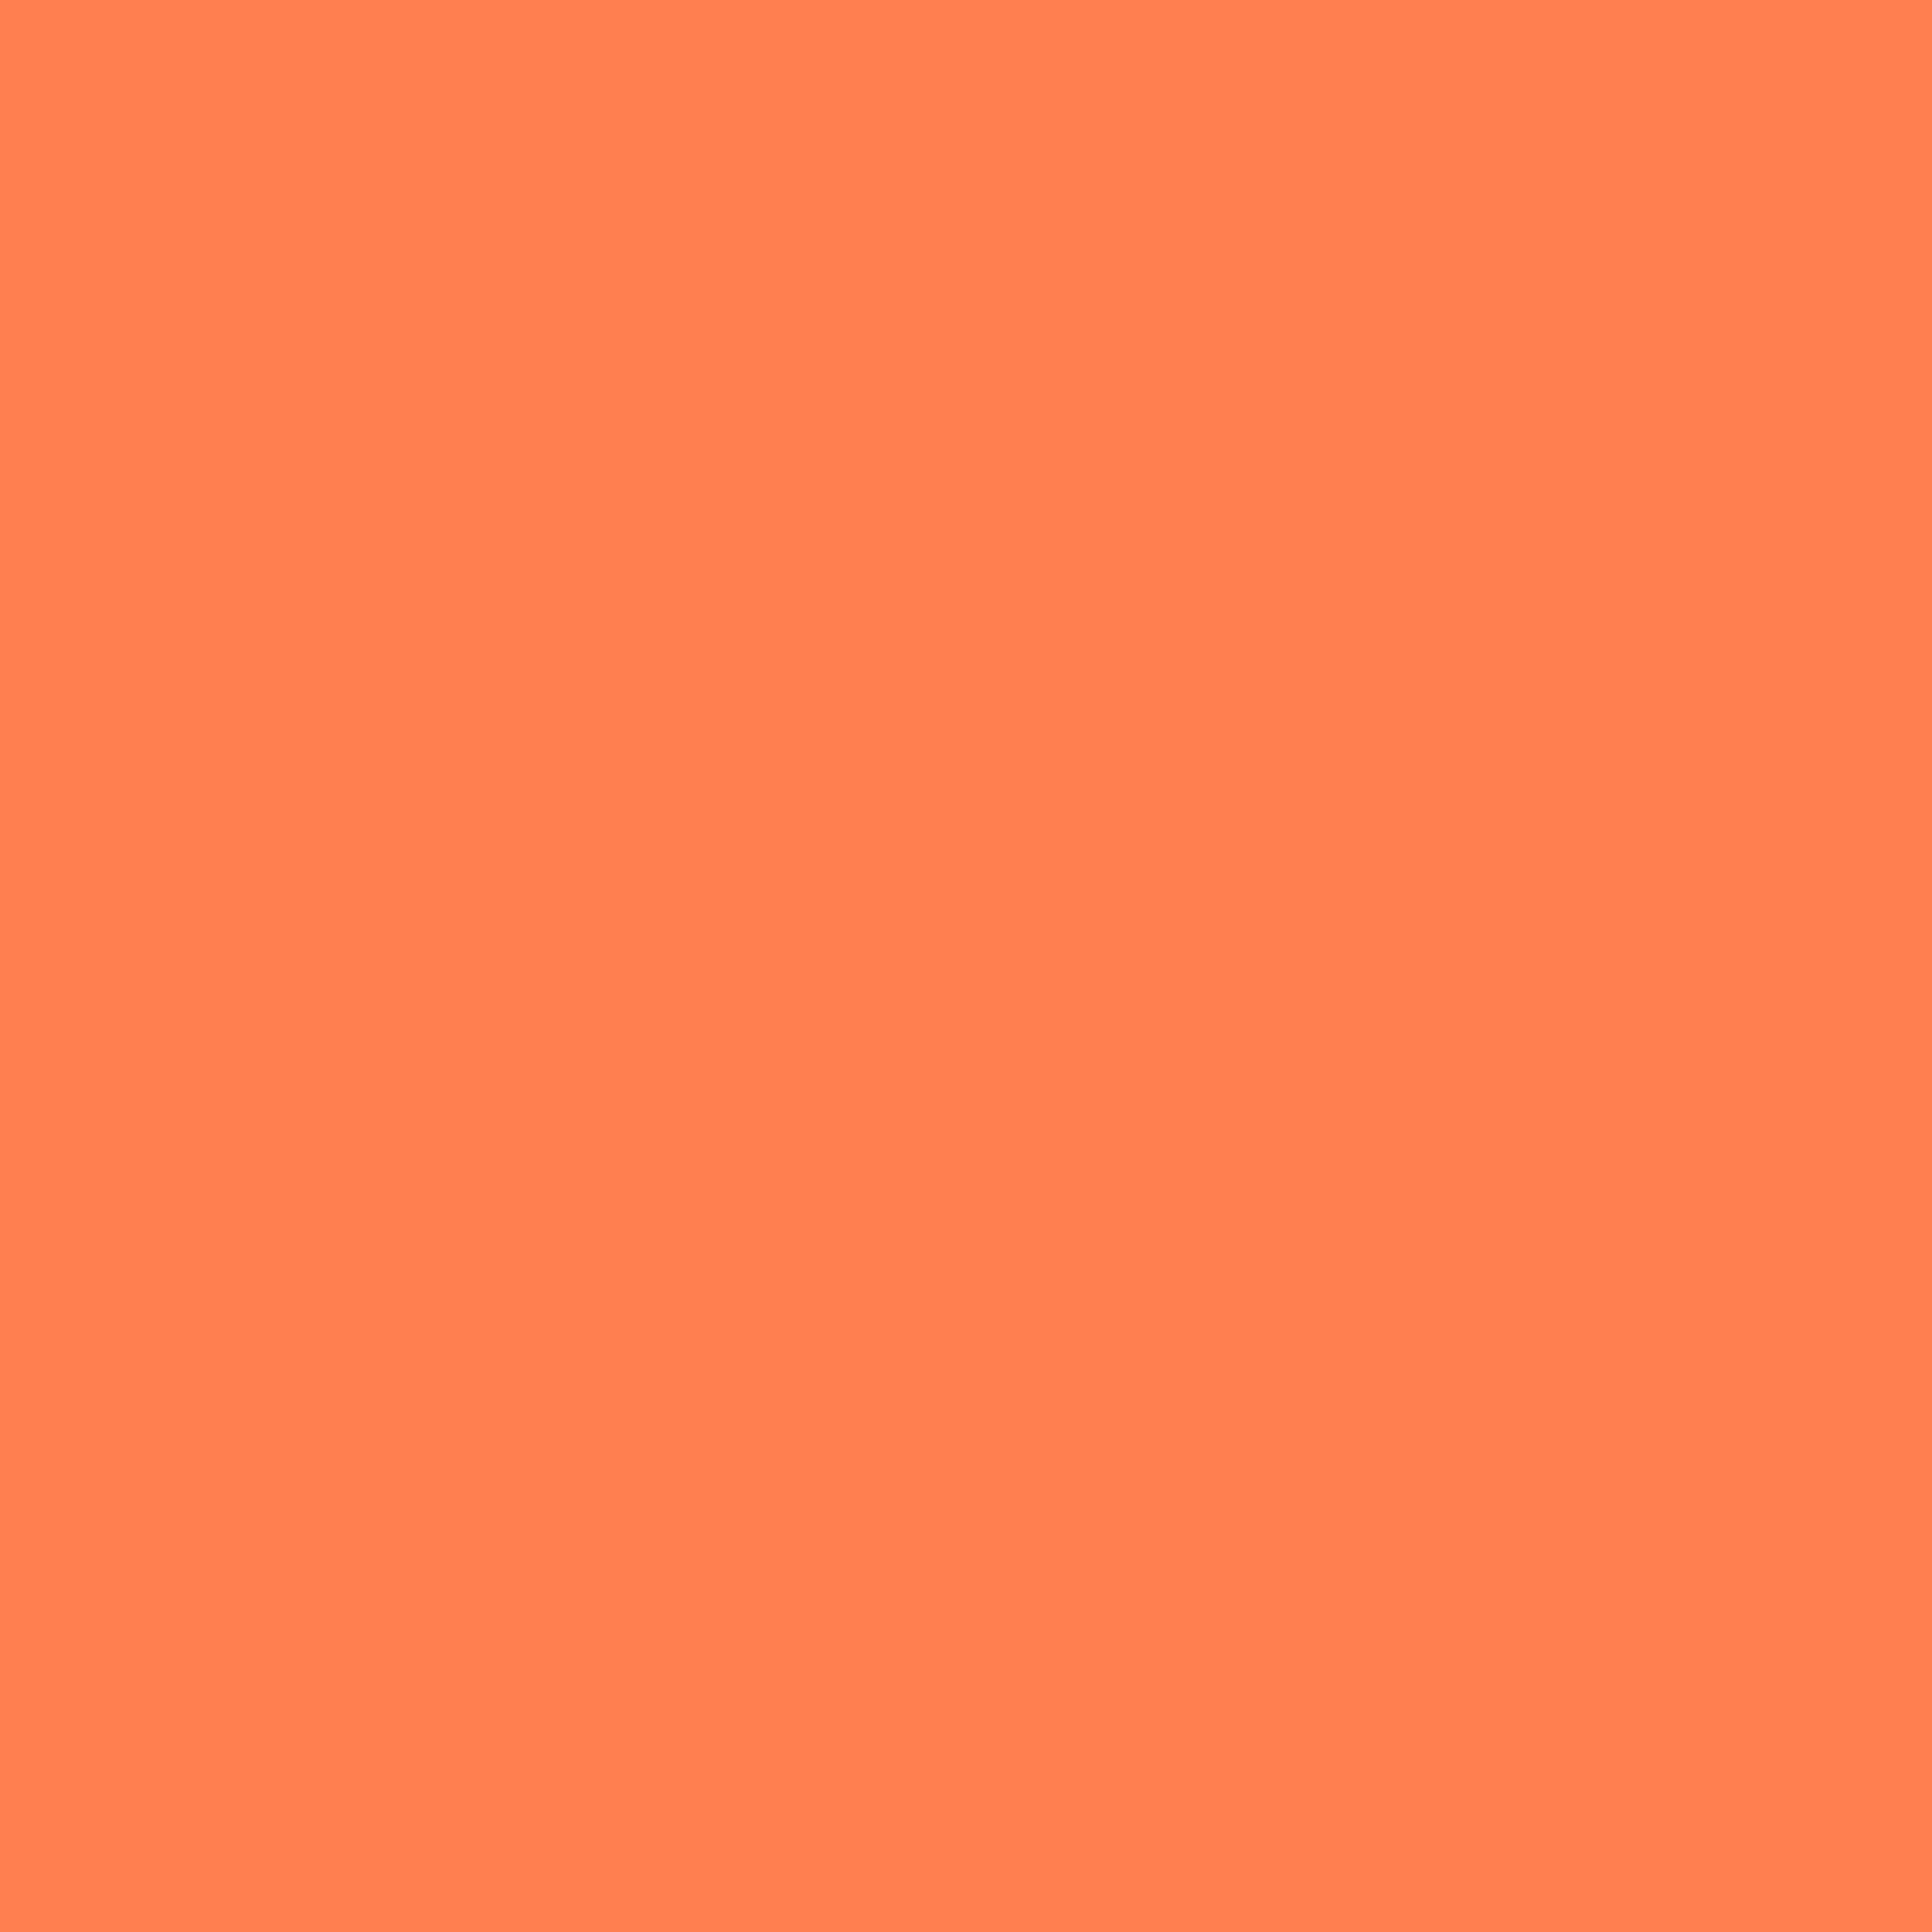 2732x2732 Coral Solid Color Background